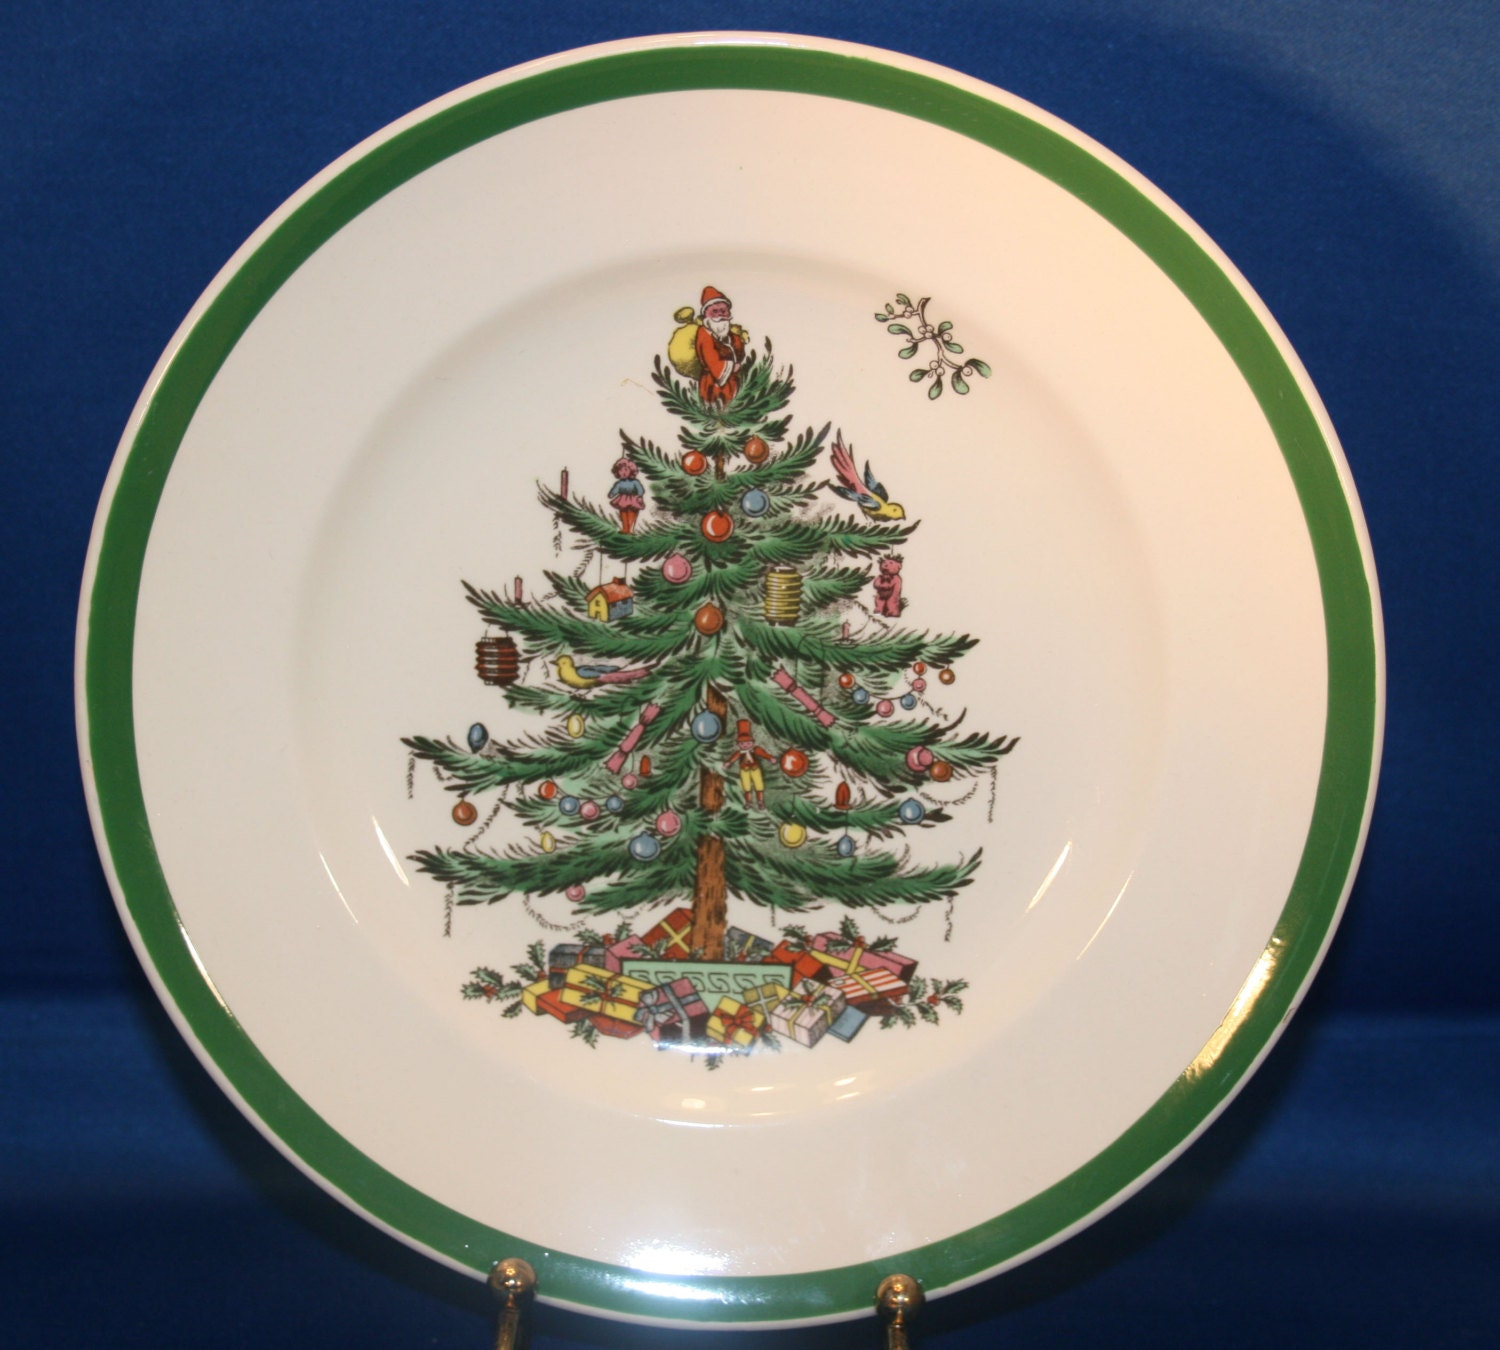 Vintage Spode Christmas Tree Holiday Salad Plate S3324 D